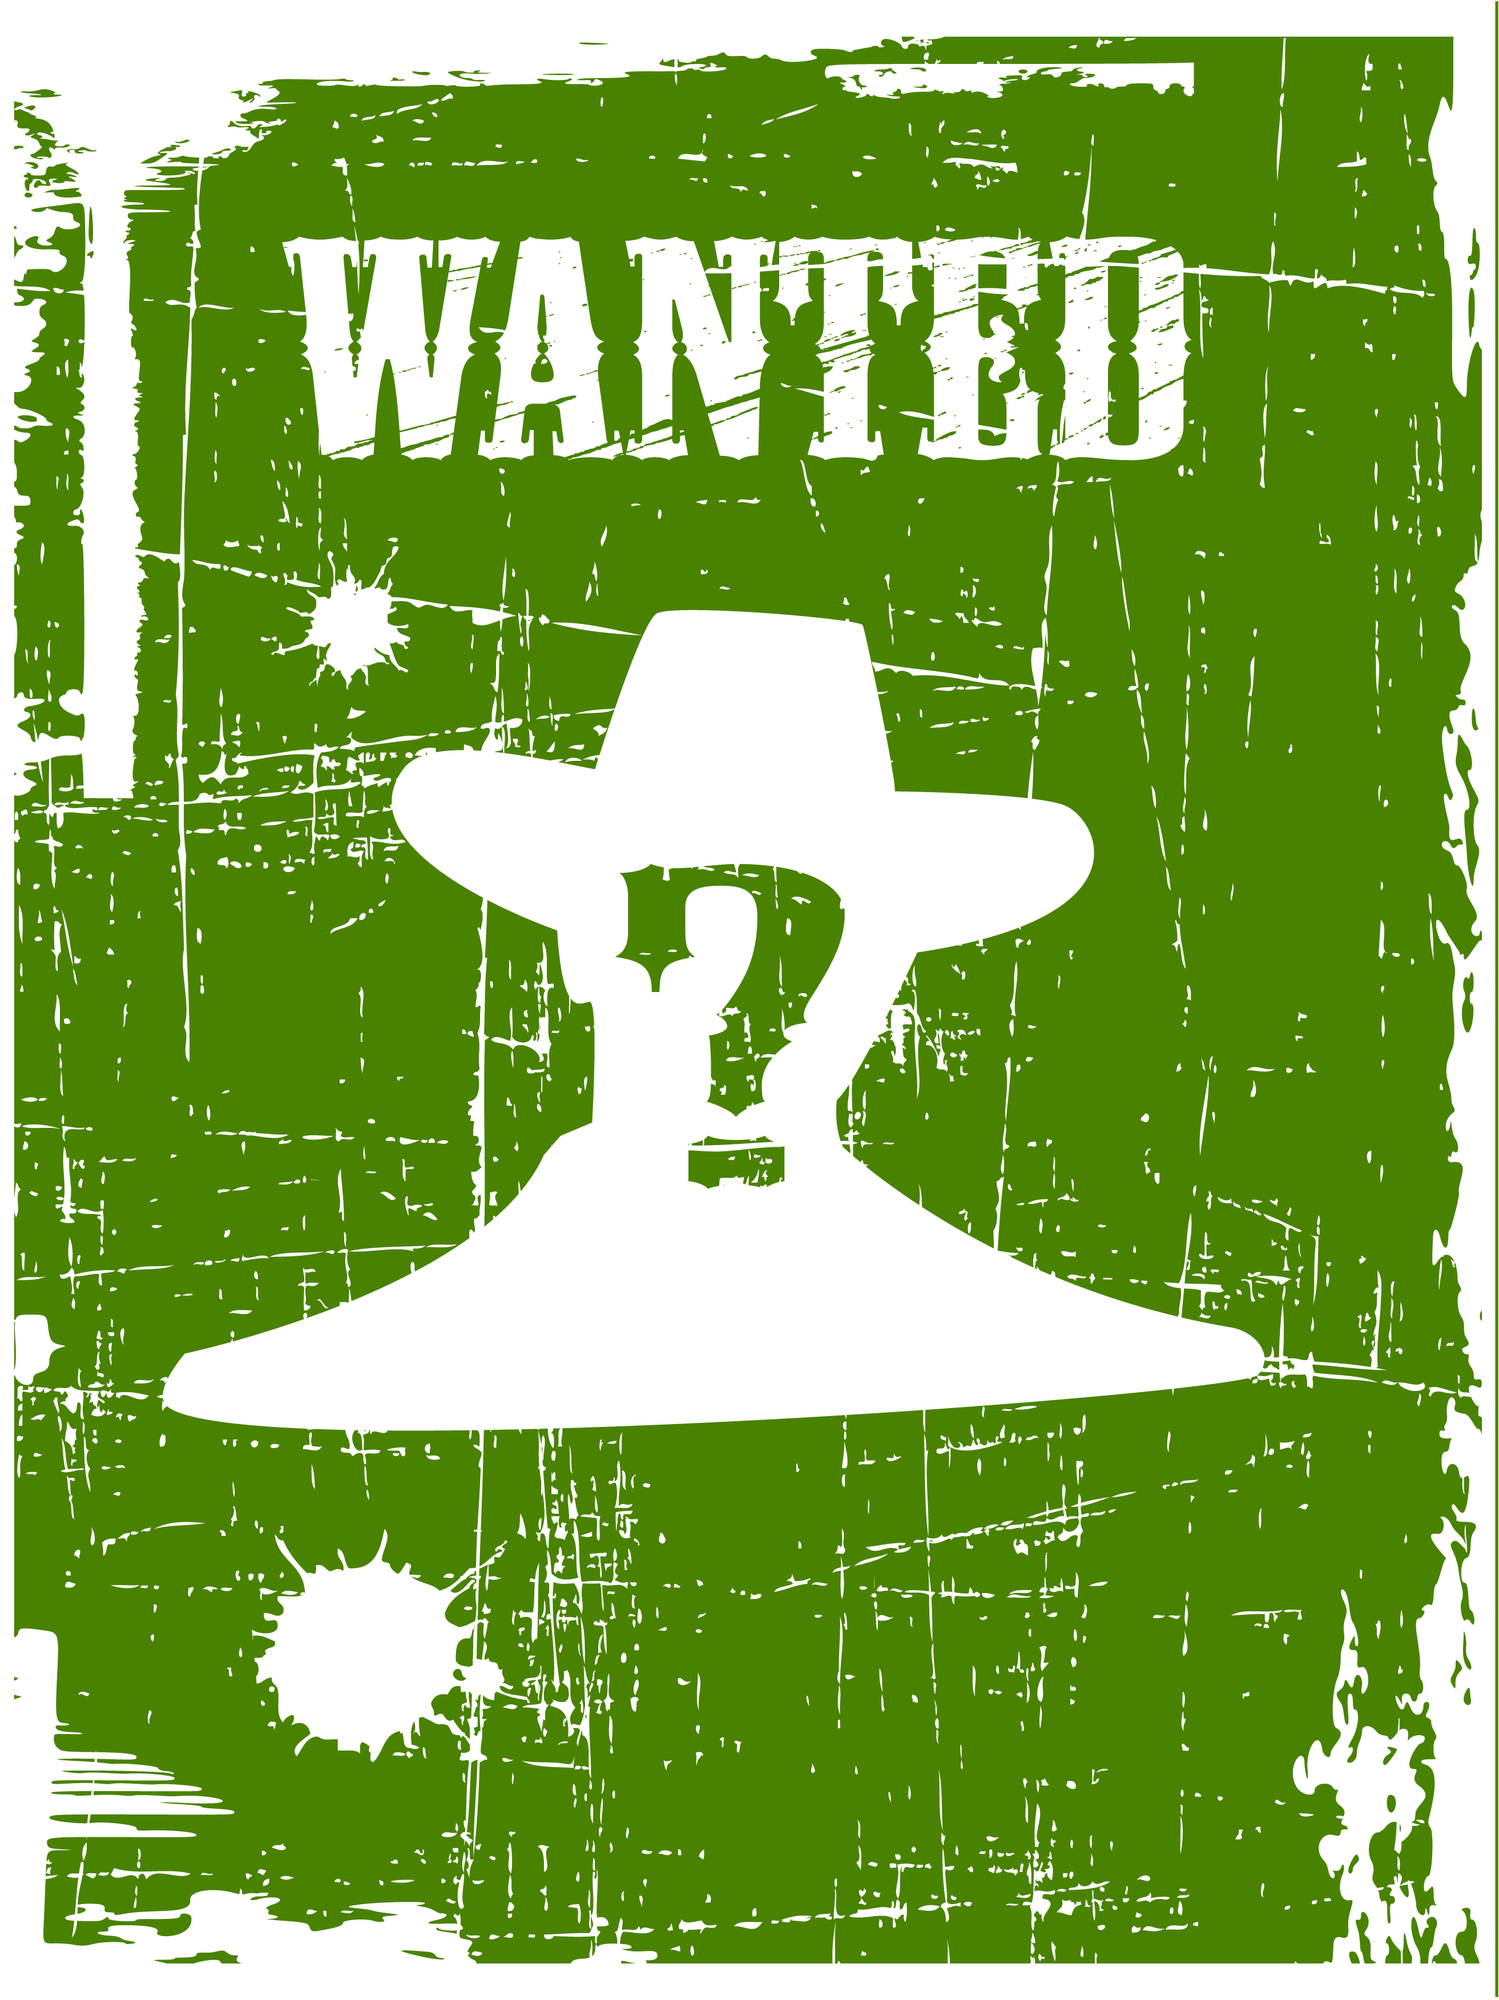 A question mark centered on the silhouette of a man in a cowboy hat under WANTED sign.